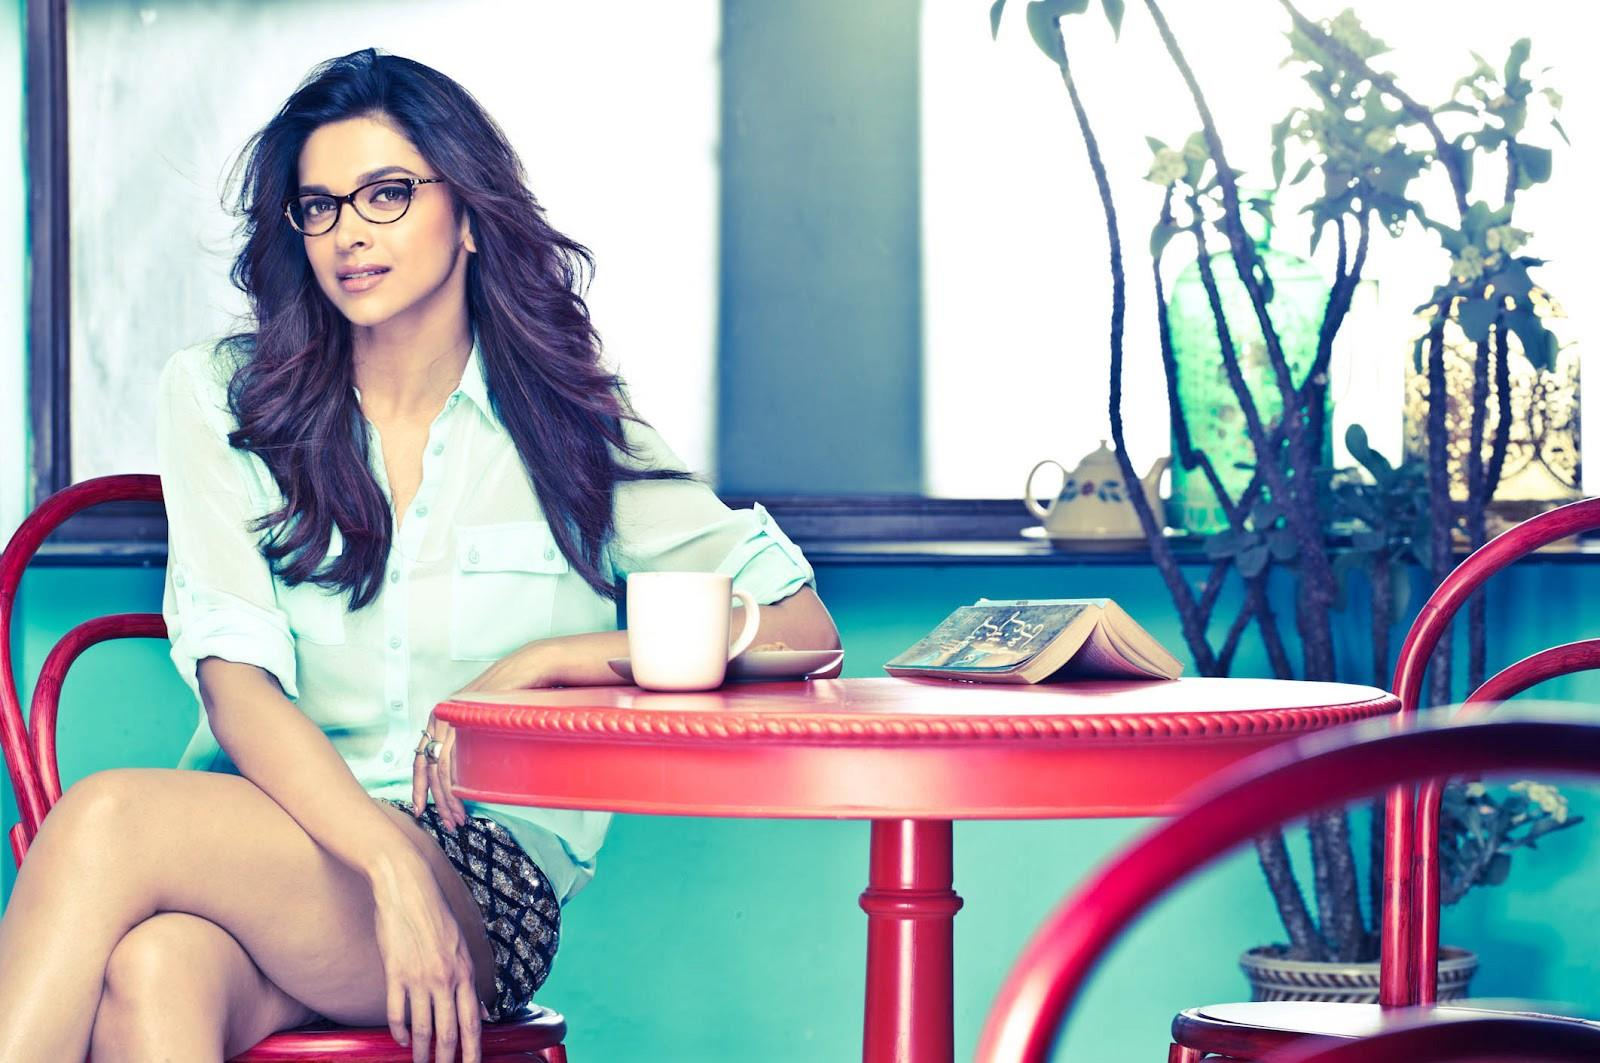 Deepika Padukone is queen of Instagram!